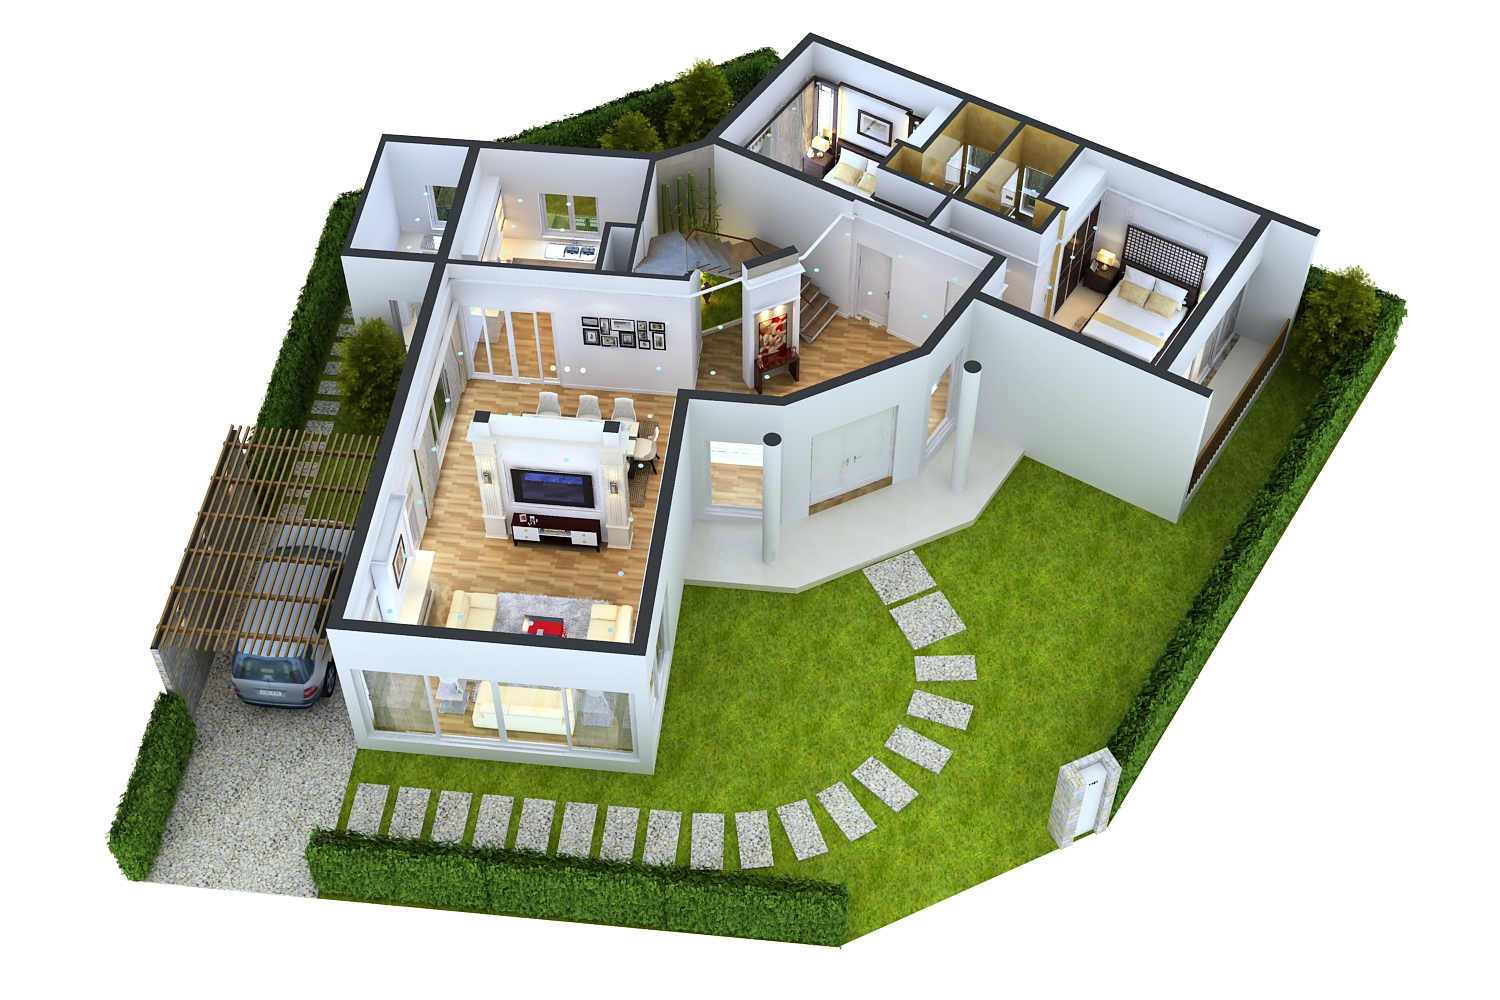 Detailed house floor 1 cutaway 3d model Modern house 1 floor